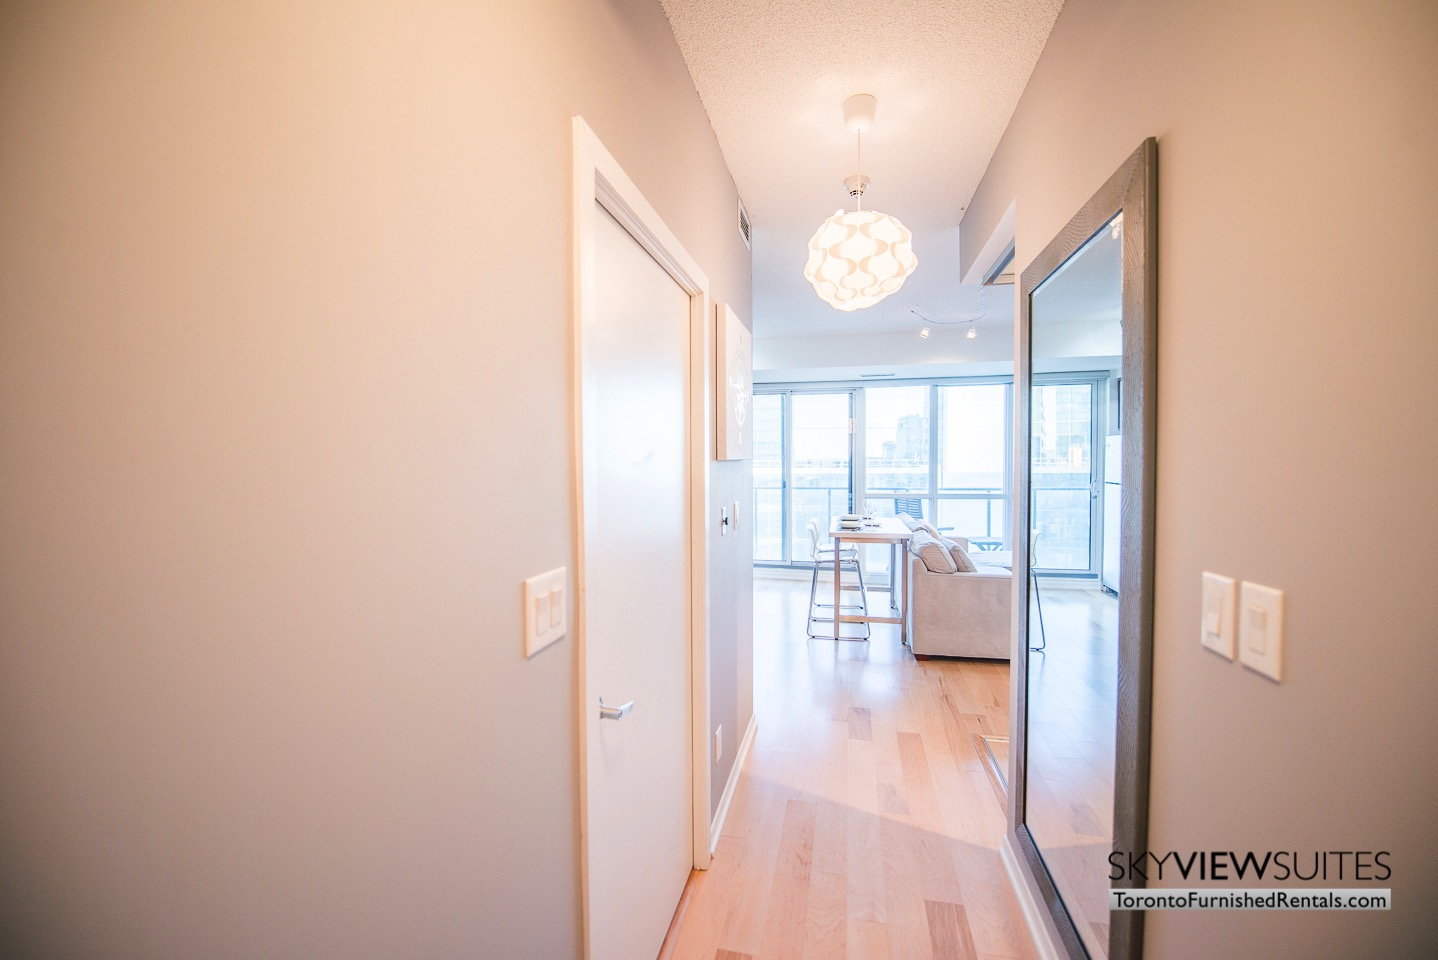 MLS furnished condo toronto front hall